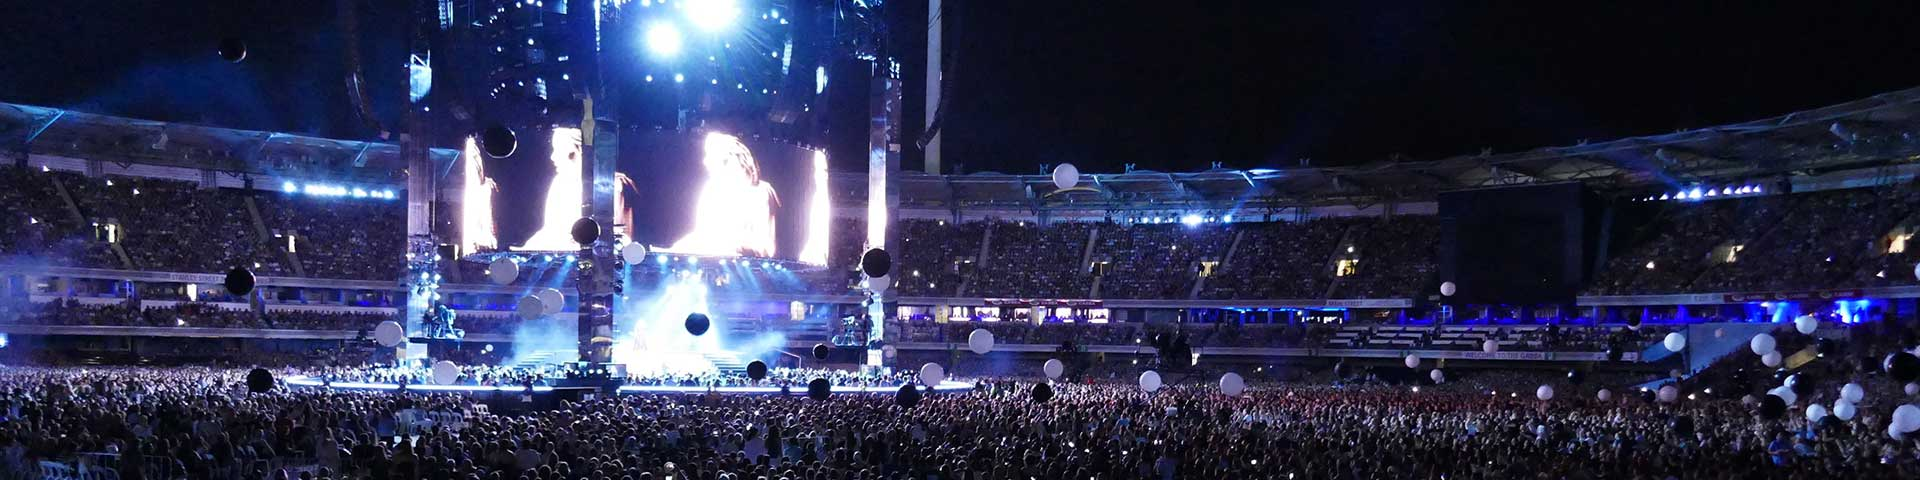 Adele Concert at The Gabba